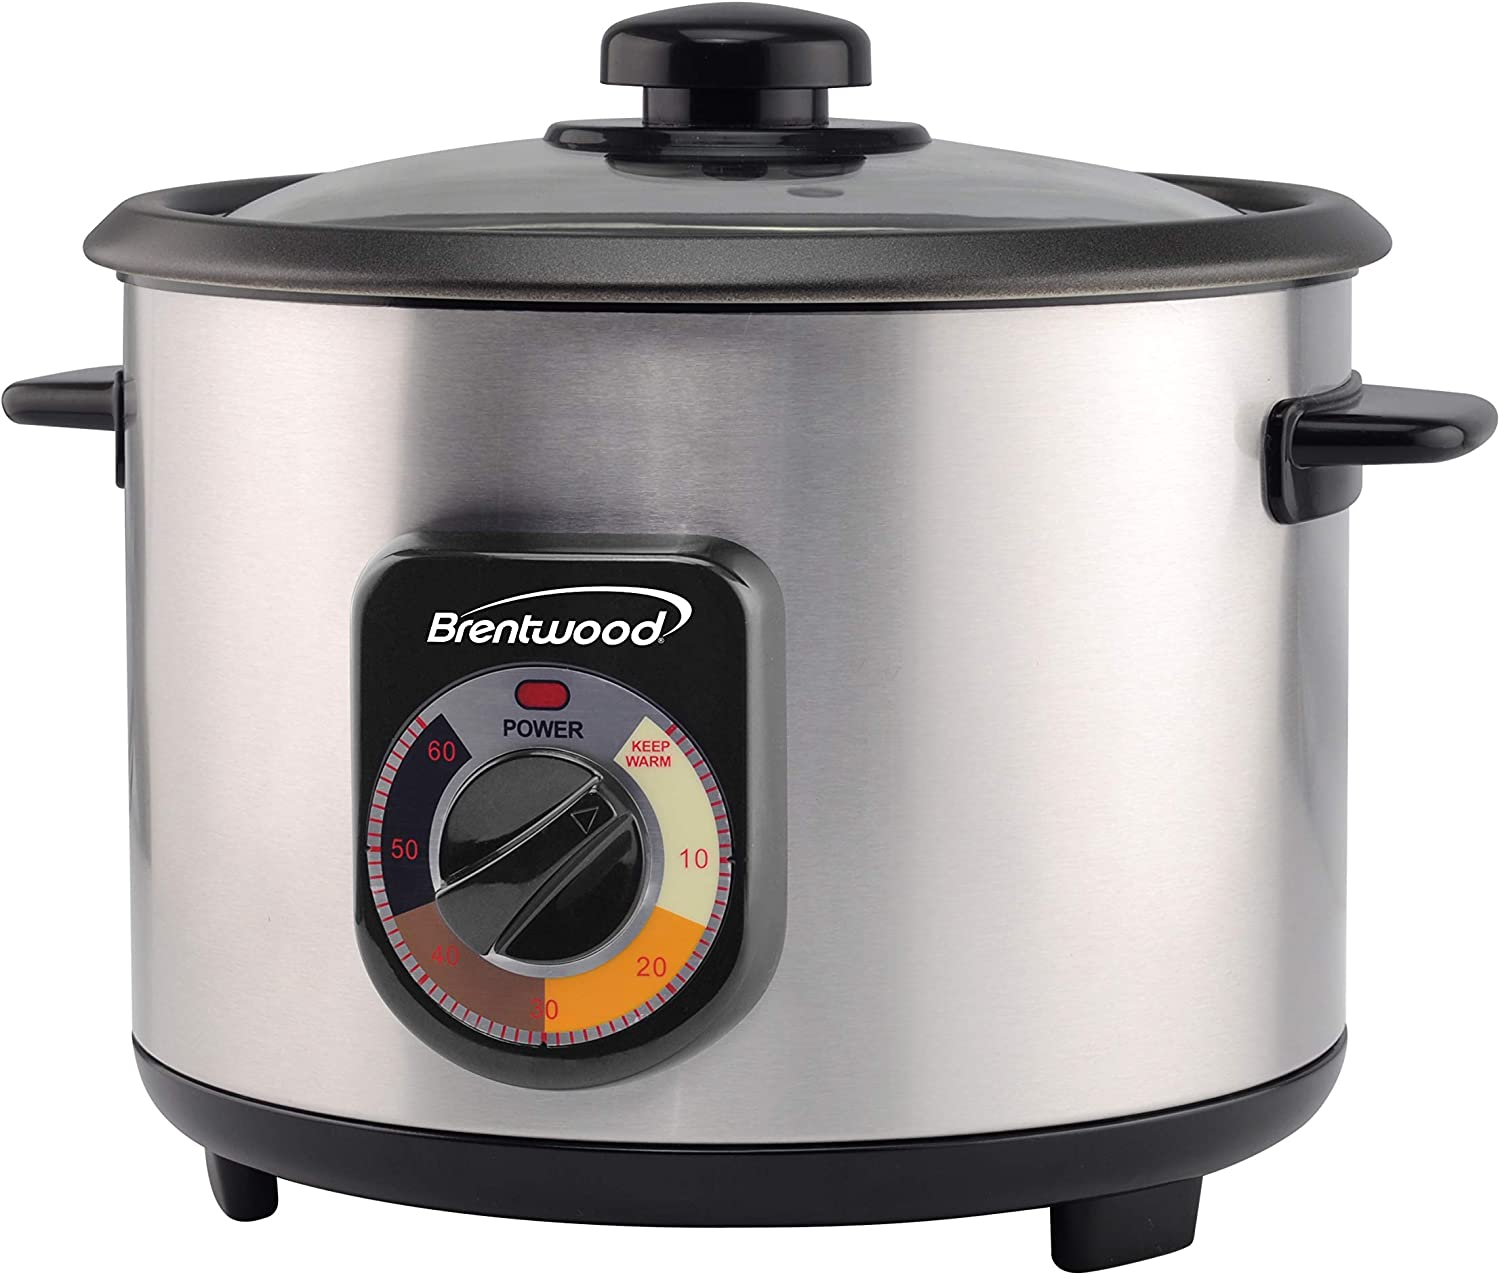 Brentwood TS-1020S 10-Cup Uncooked/20-Cup Cooked Crunchy Persian Rice Cooker, Stainless Steel